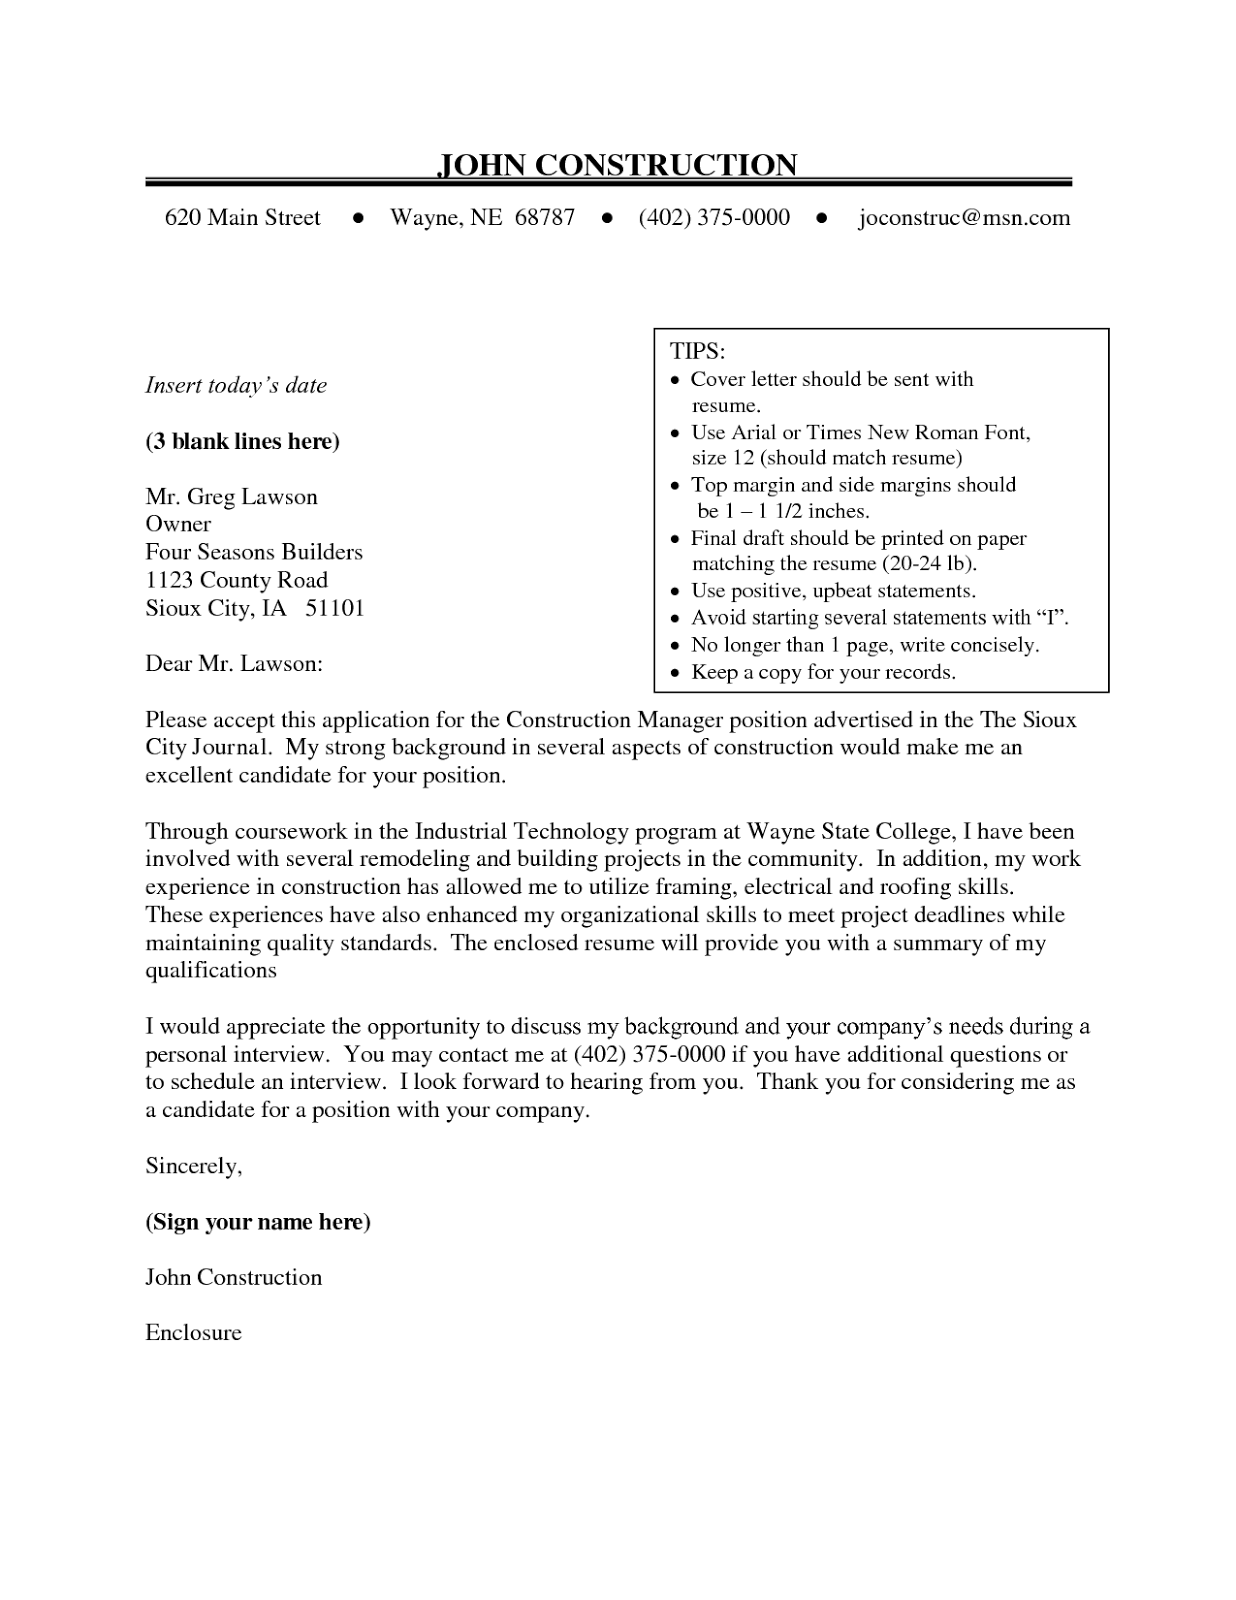 kpmg cover letter resume ideas 297514 digpio us. letter accounting ...